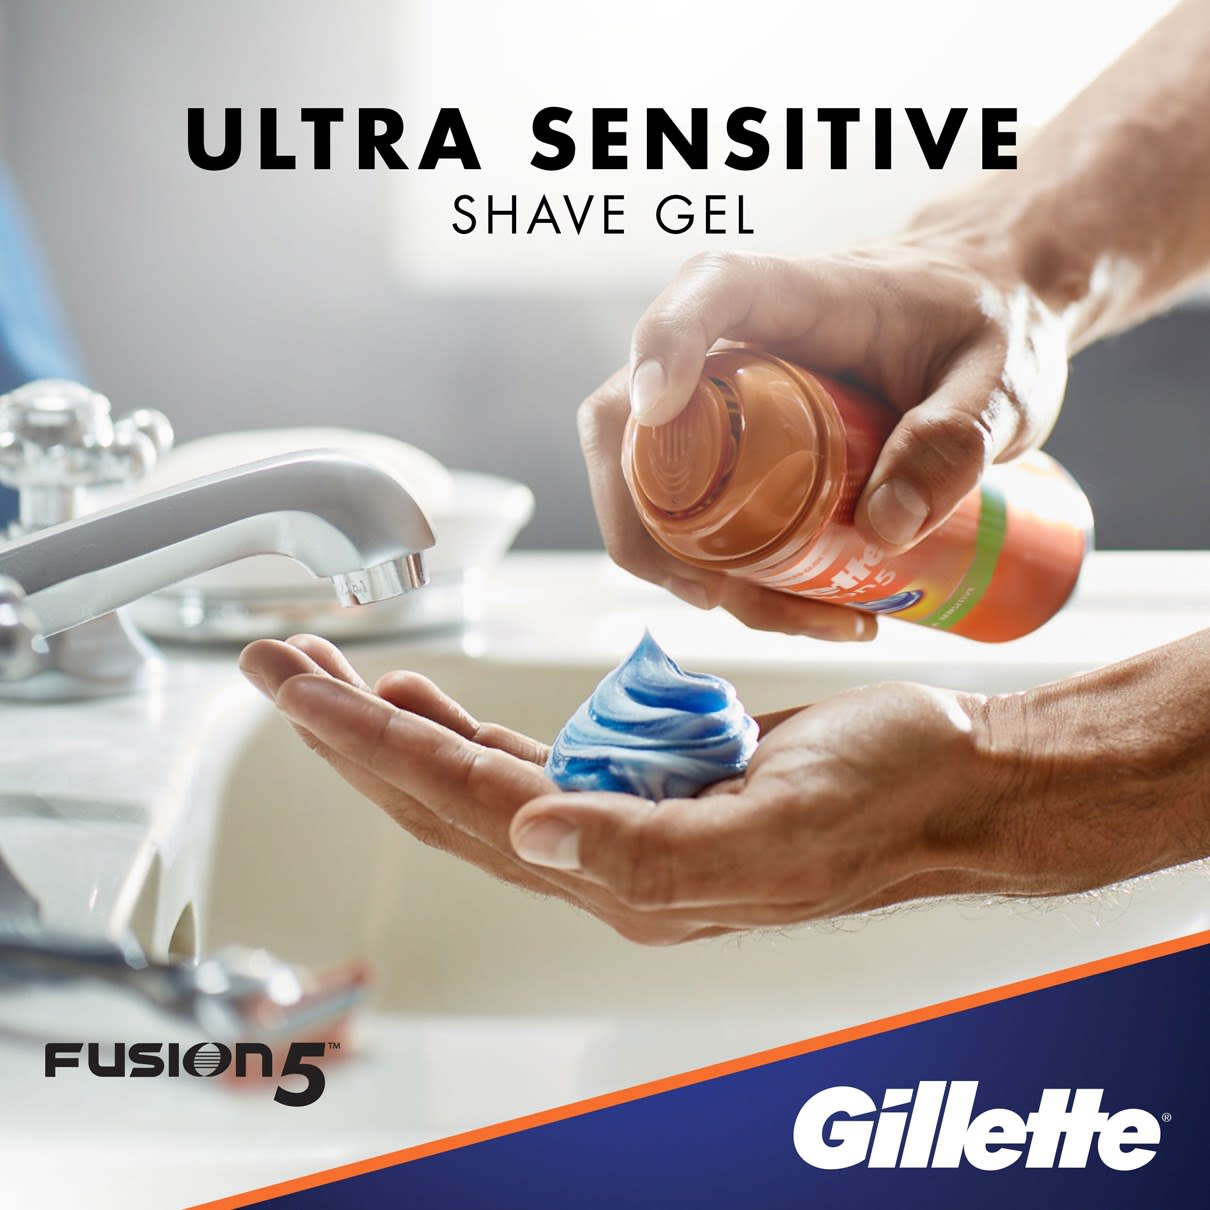 Ultra Sensitive Shave Gel I  Gillette Fusion5 Ultra Sensitive Shave Gel